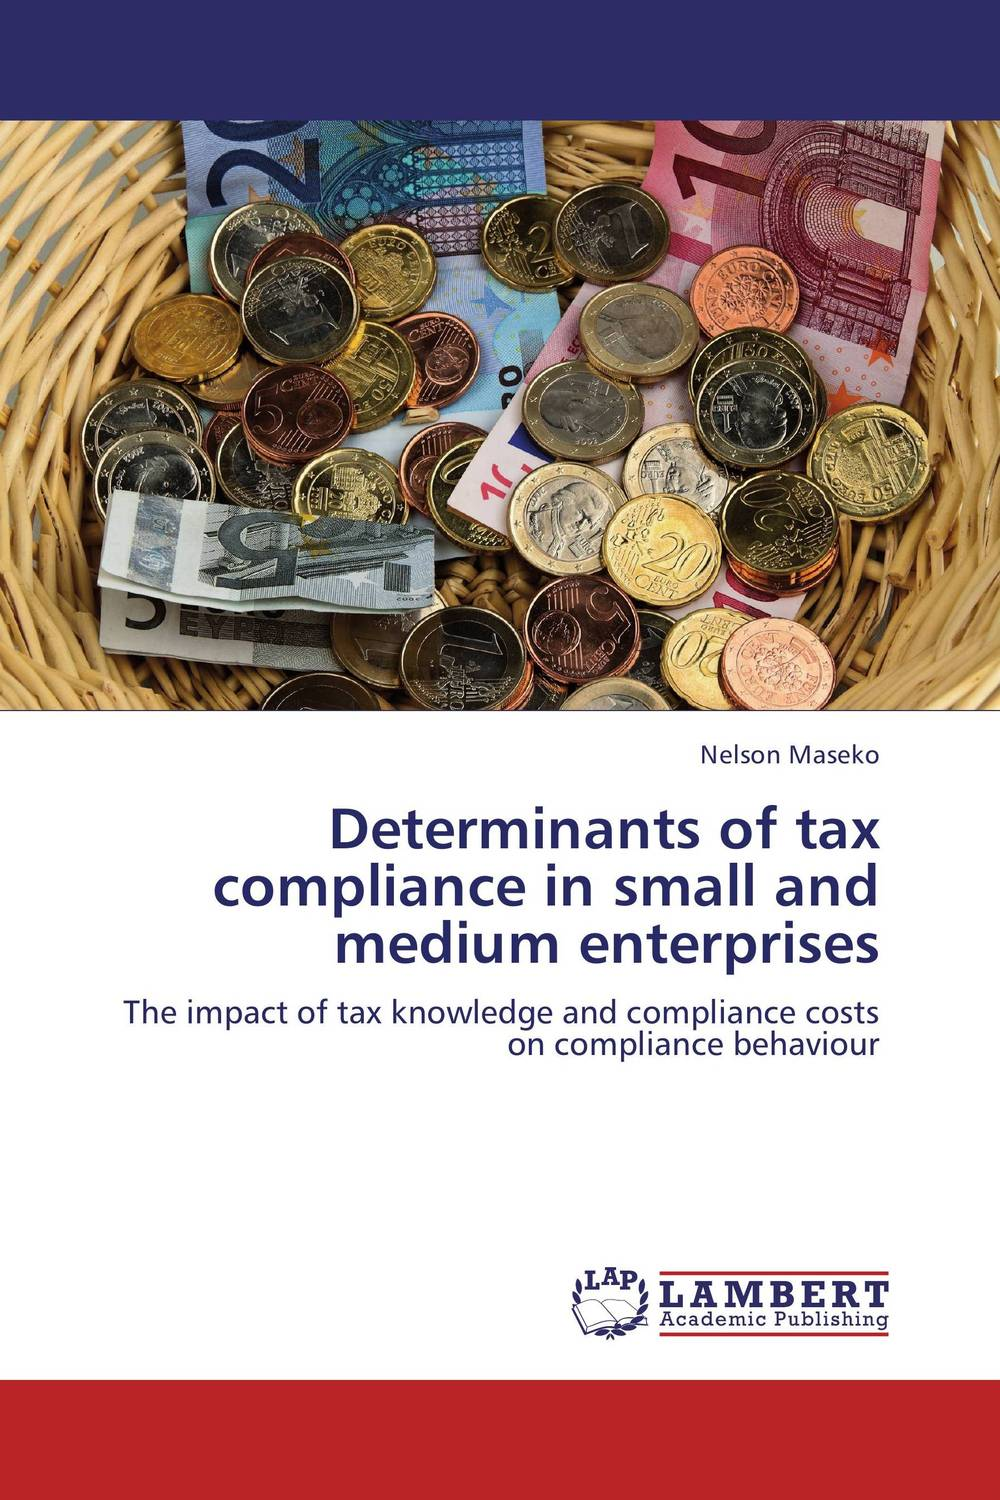 Determinants of tax compliance in small and medium enterprises